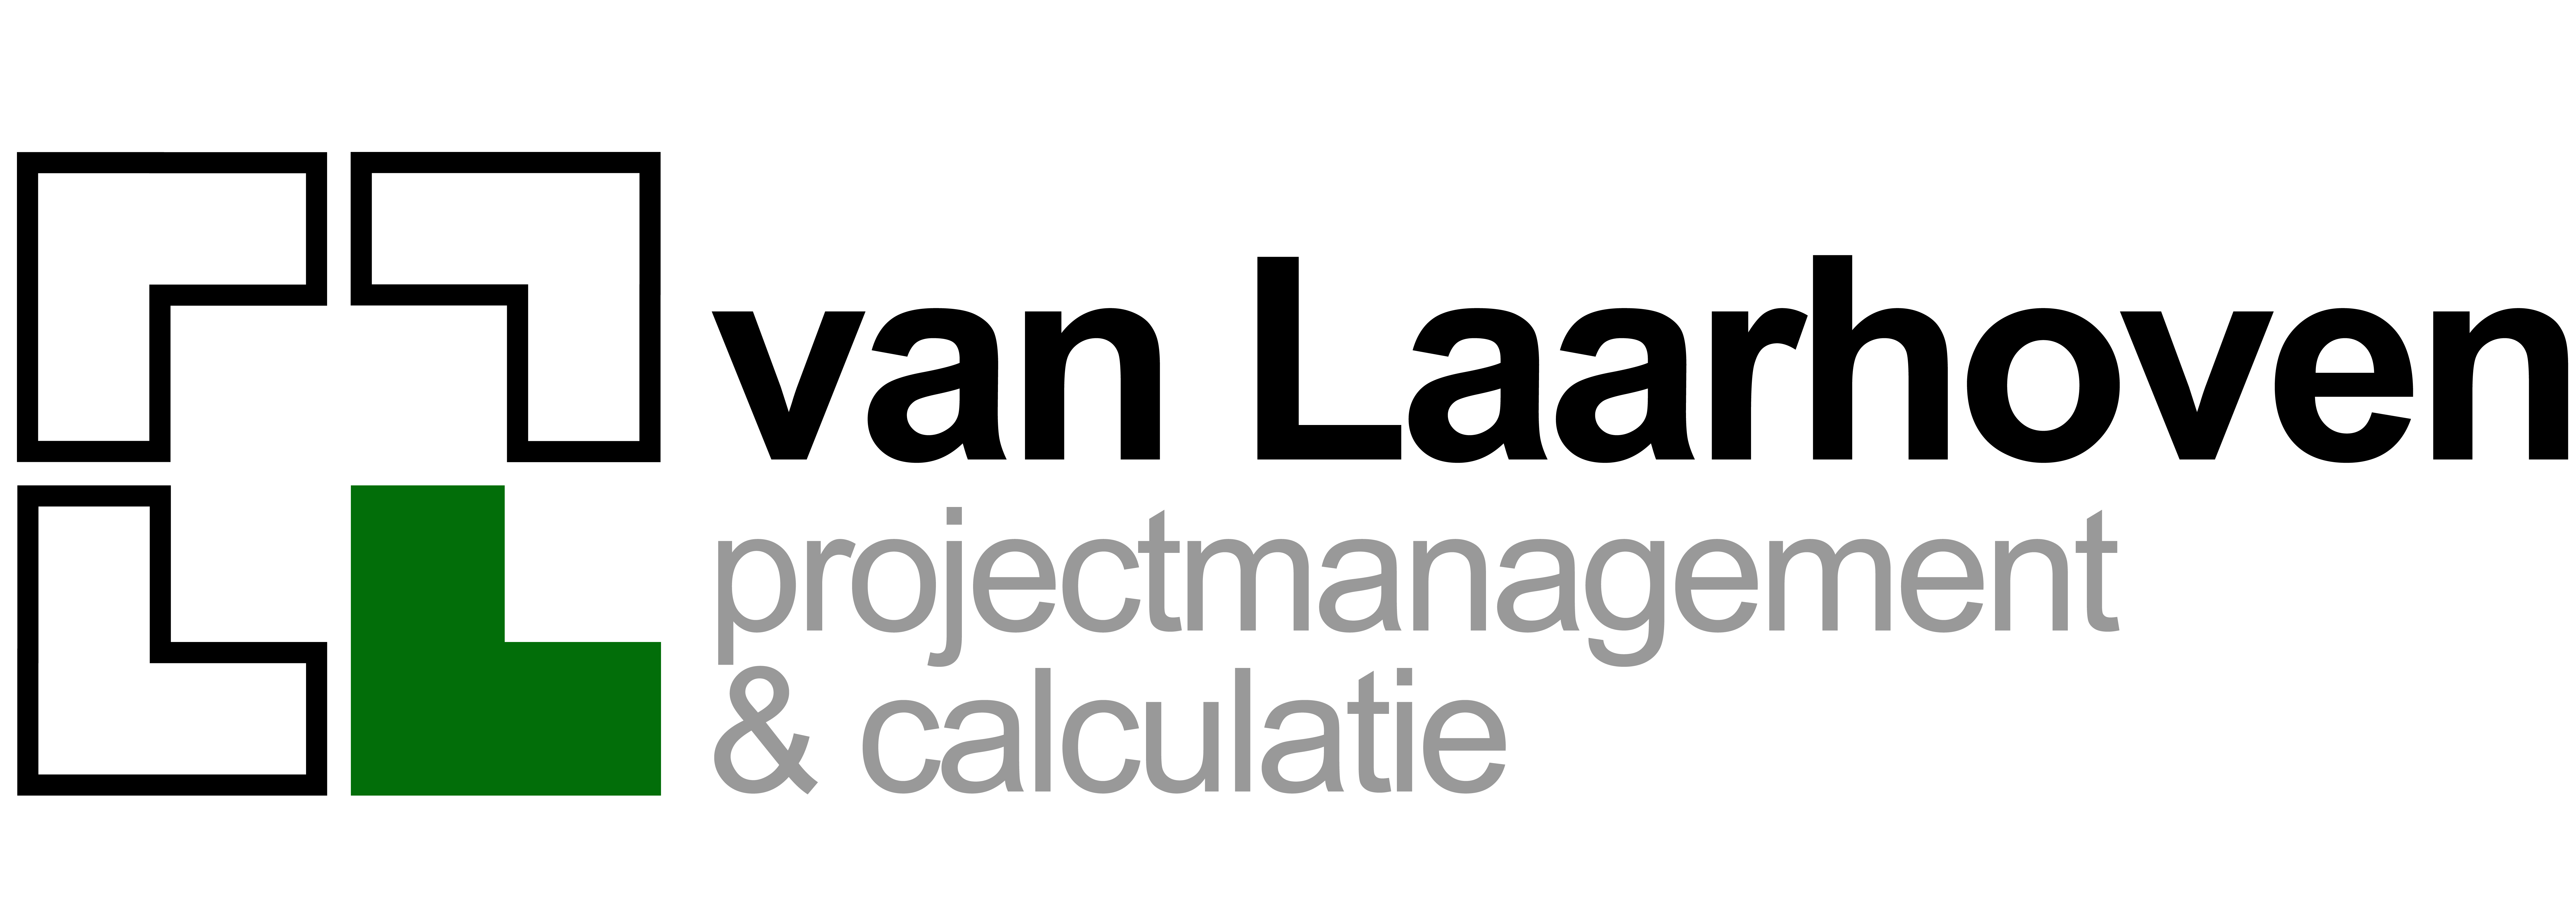 Van Laarhoven Projectmanagement & Calculatie